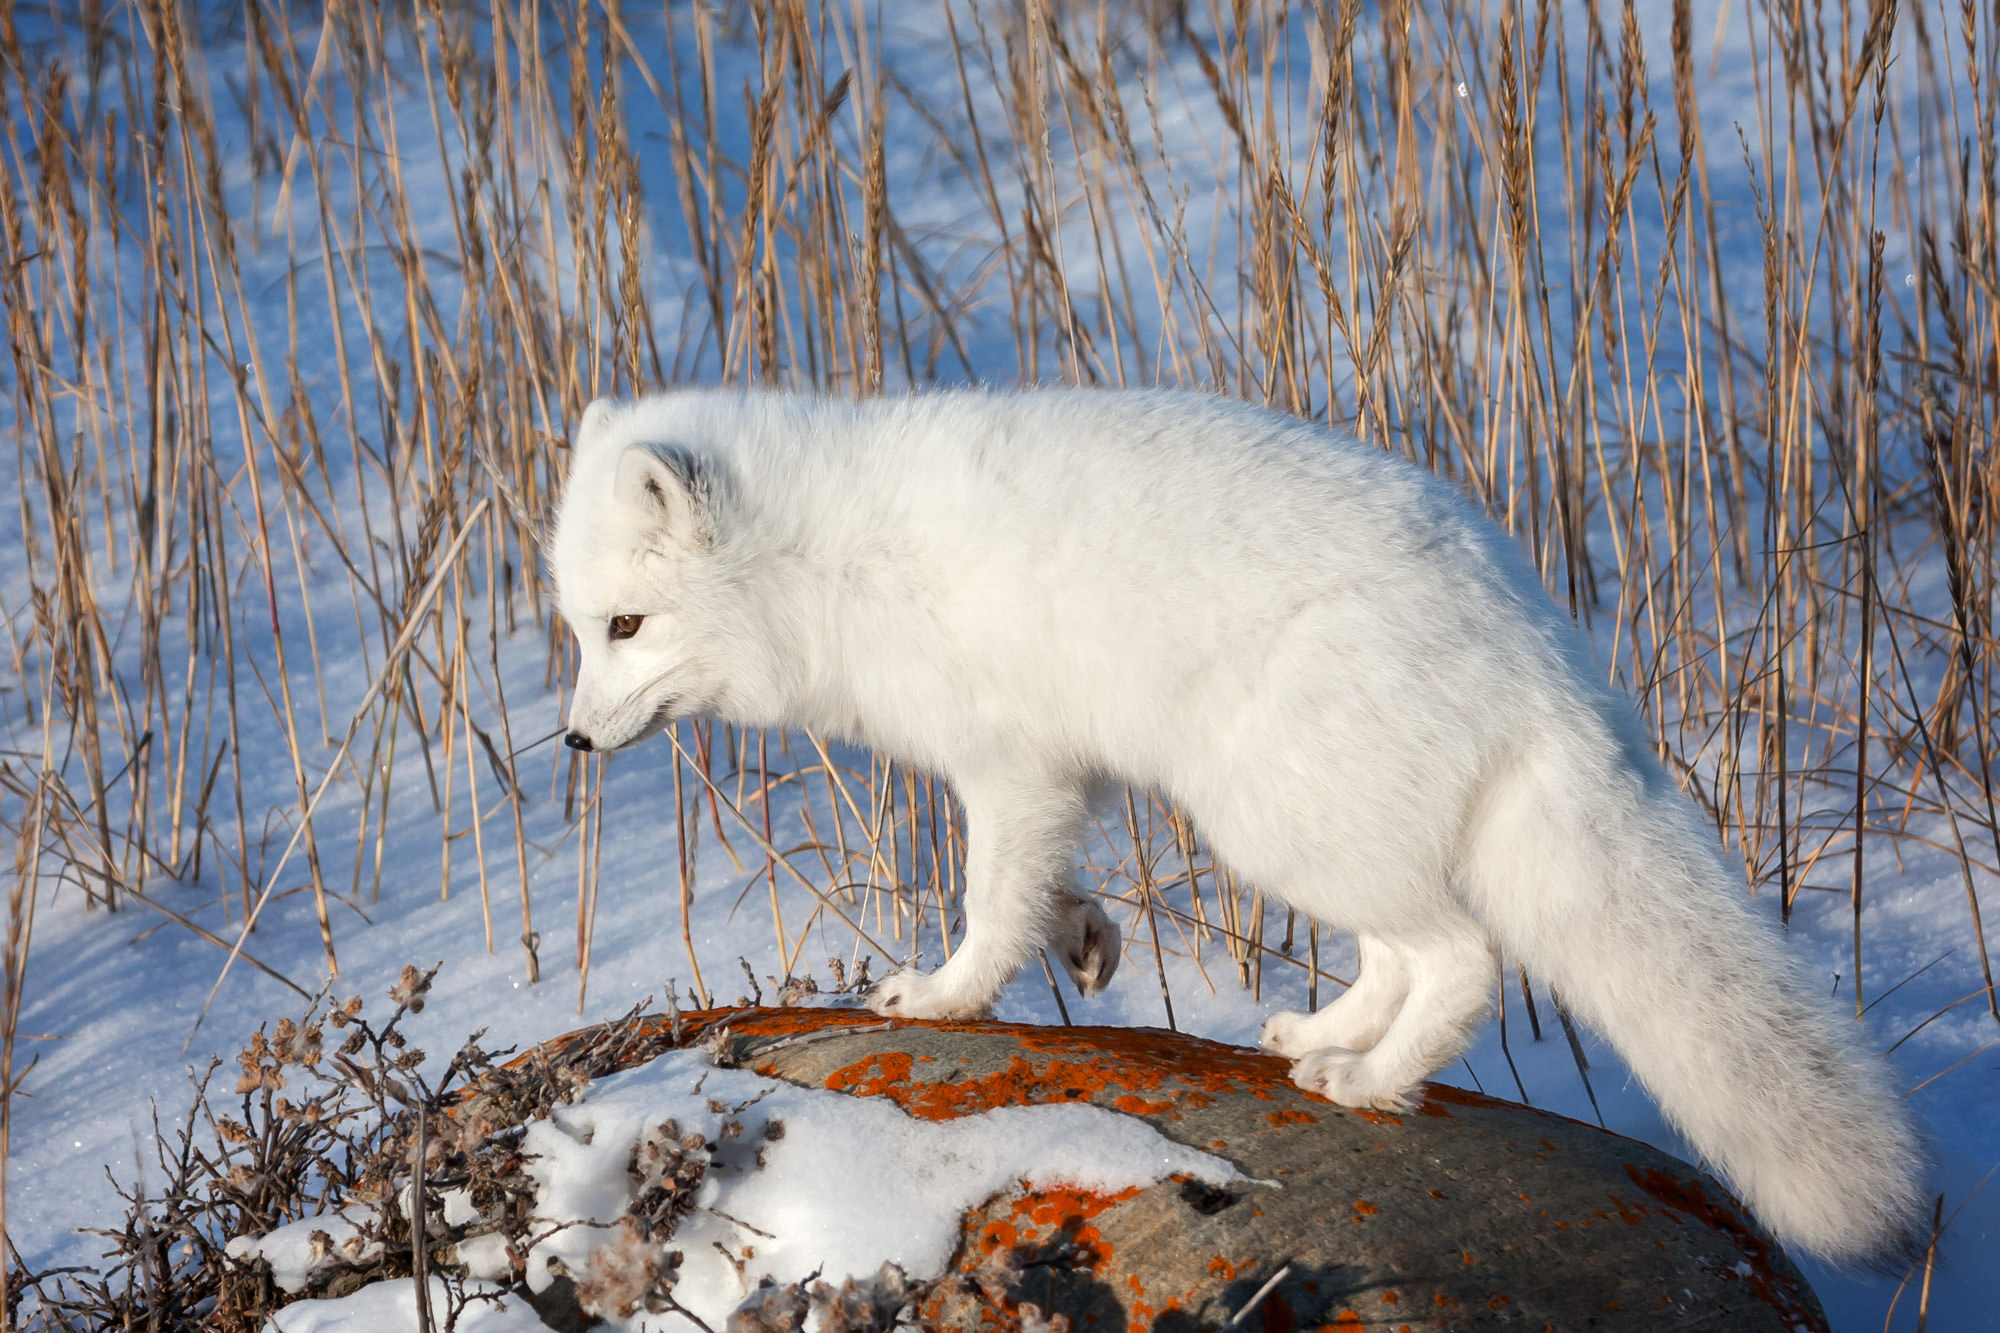 Fox, Arctic Fox, Canada, Winter, limited edition, photograph, fine art, wildlife, photo